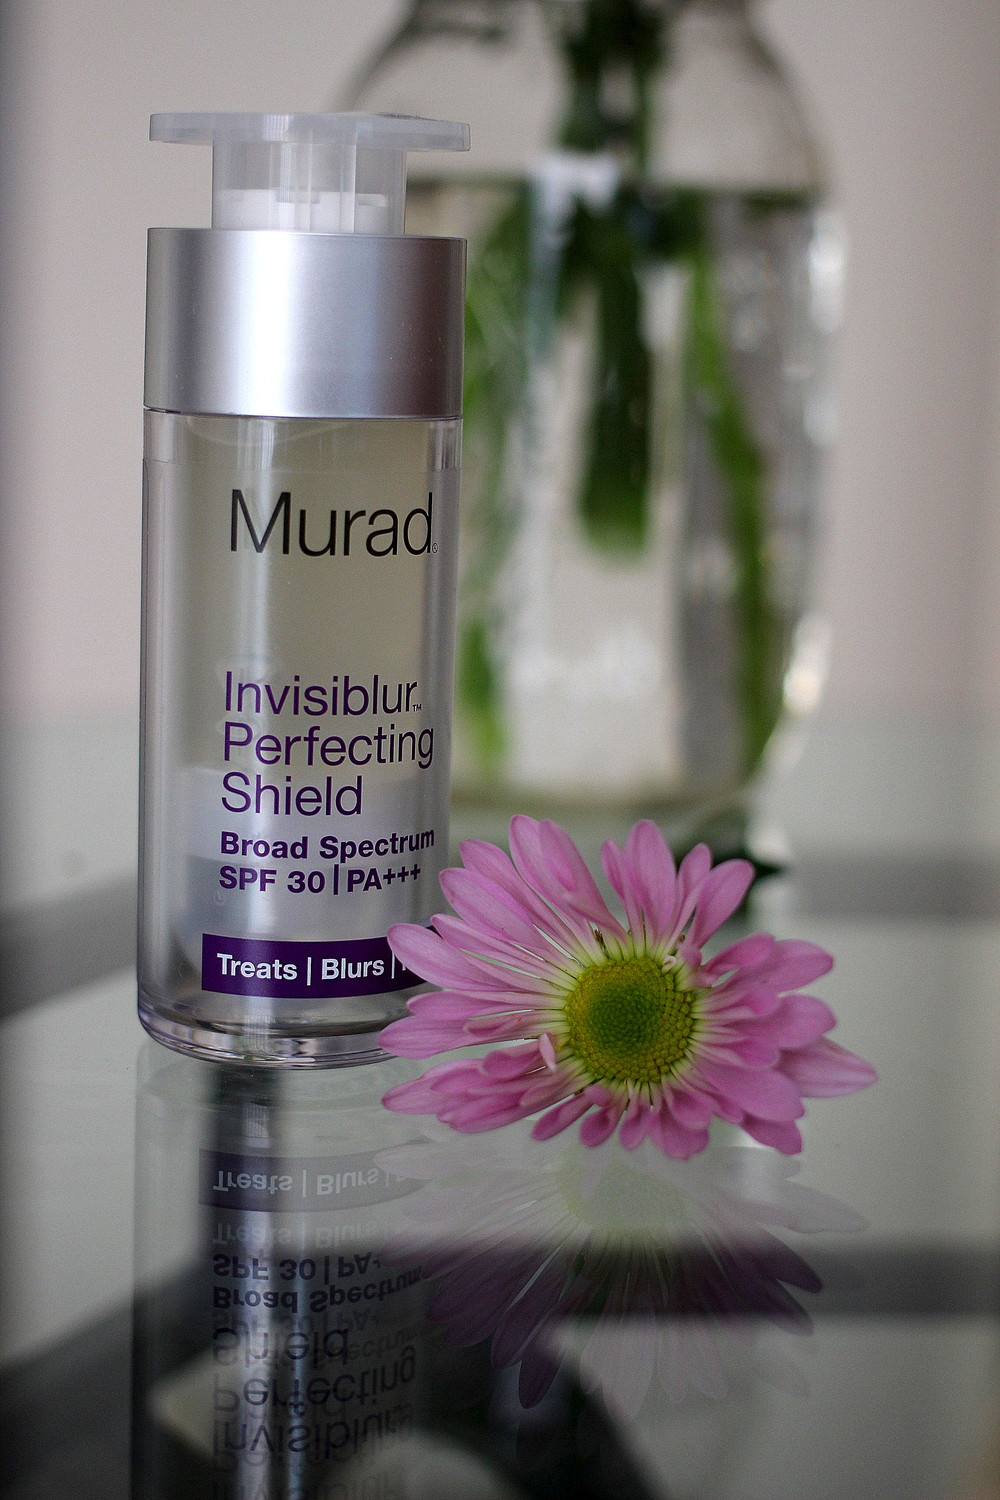 Murad Invisiblur Perfecting Shield Review at  Kaleidoscopes and Polka Dots